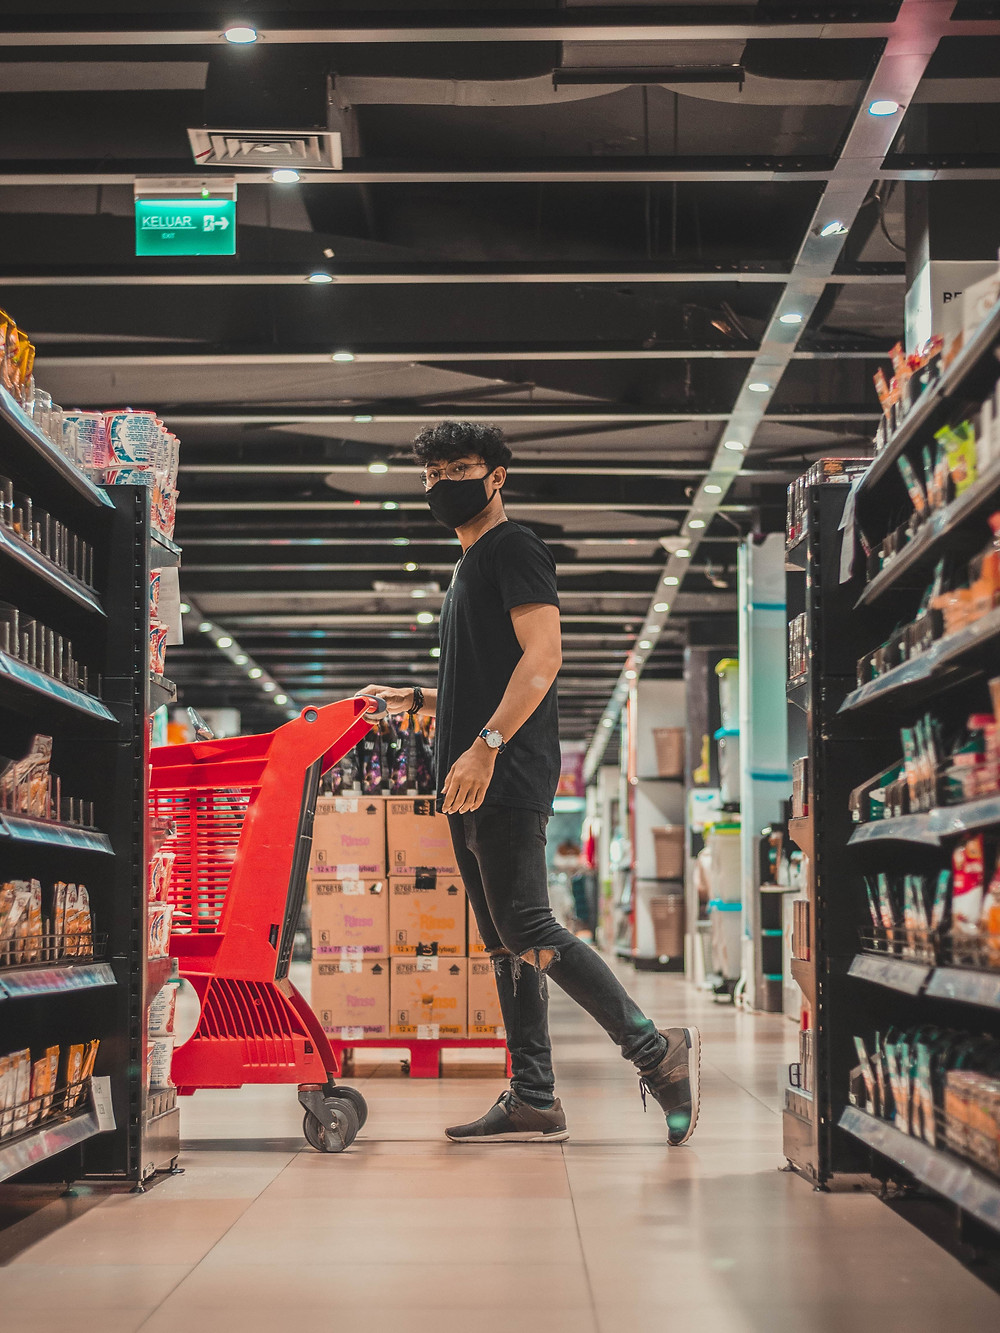 Your customer's carts will keep filling up if you have good loyalty program marketing.